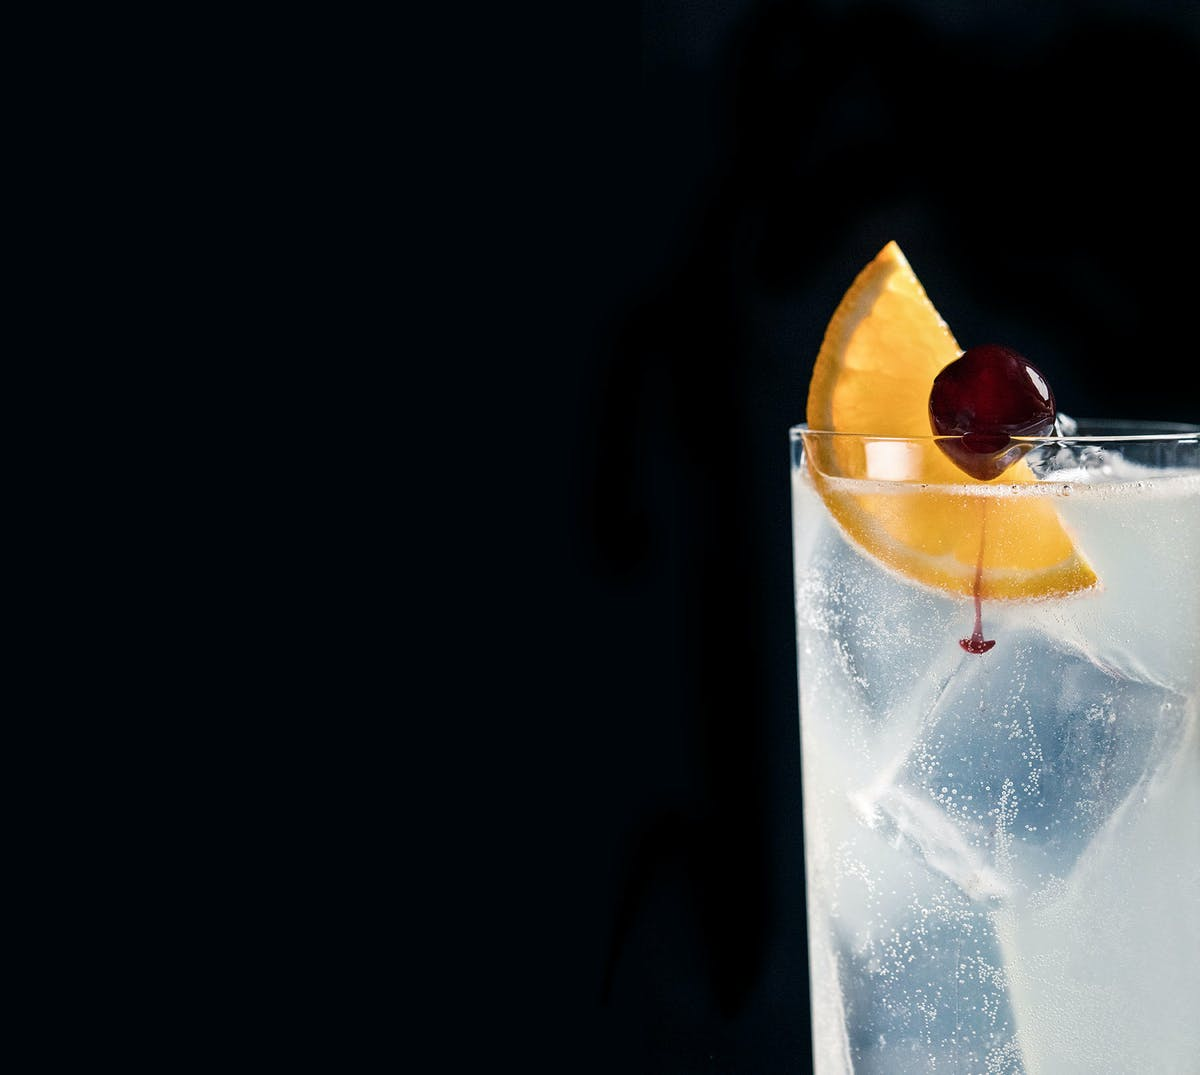 a cocktail served on a glass with an orange slice and a cherry